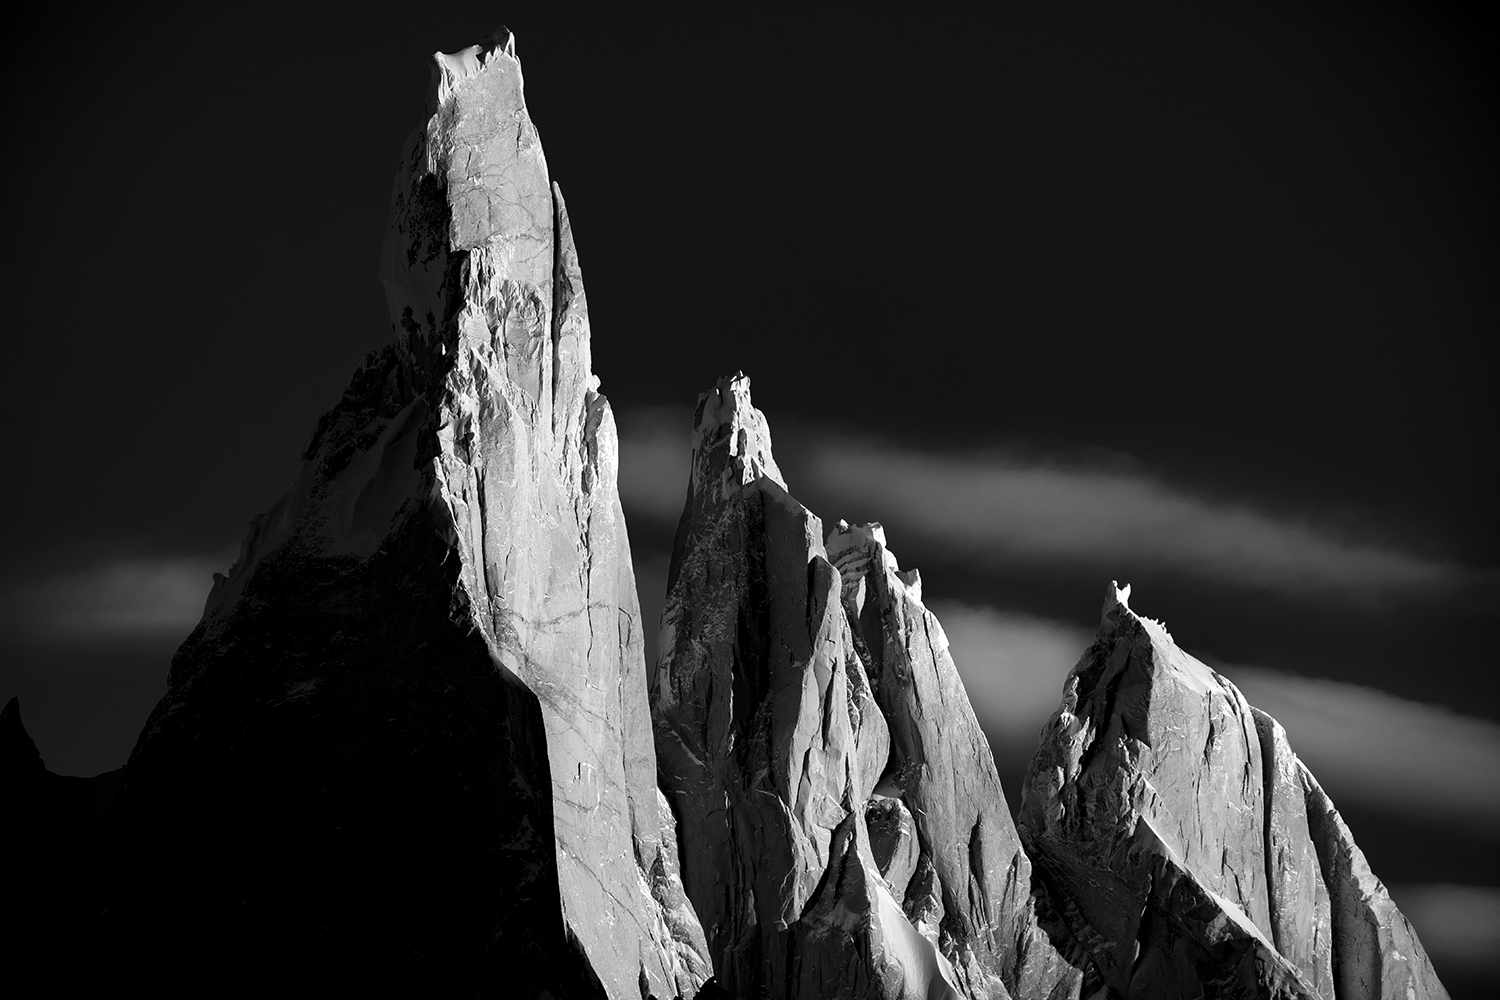 Patagonia, Black and White Cerro Torre